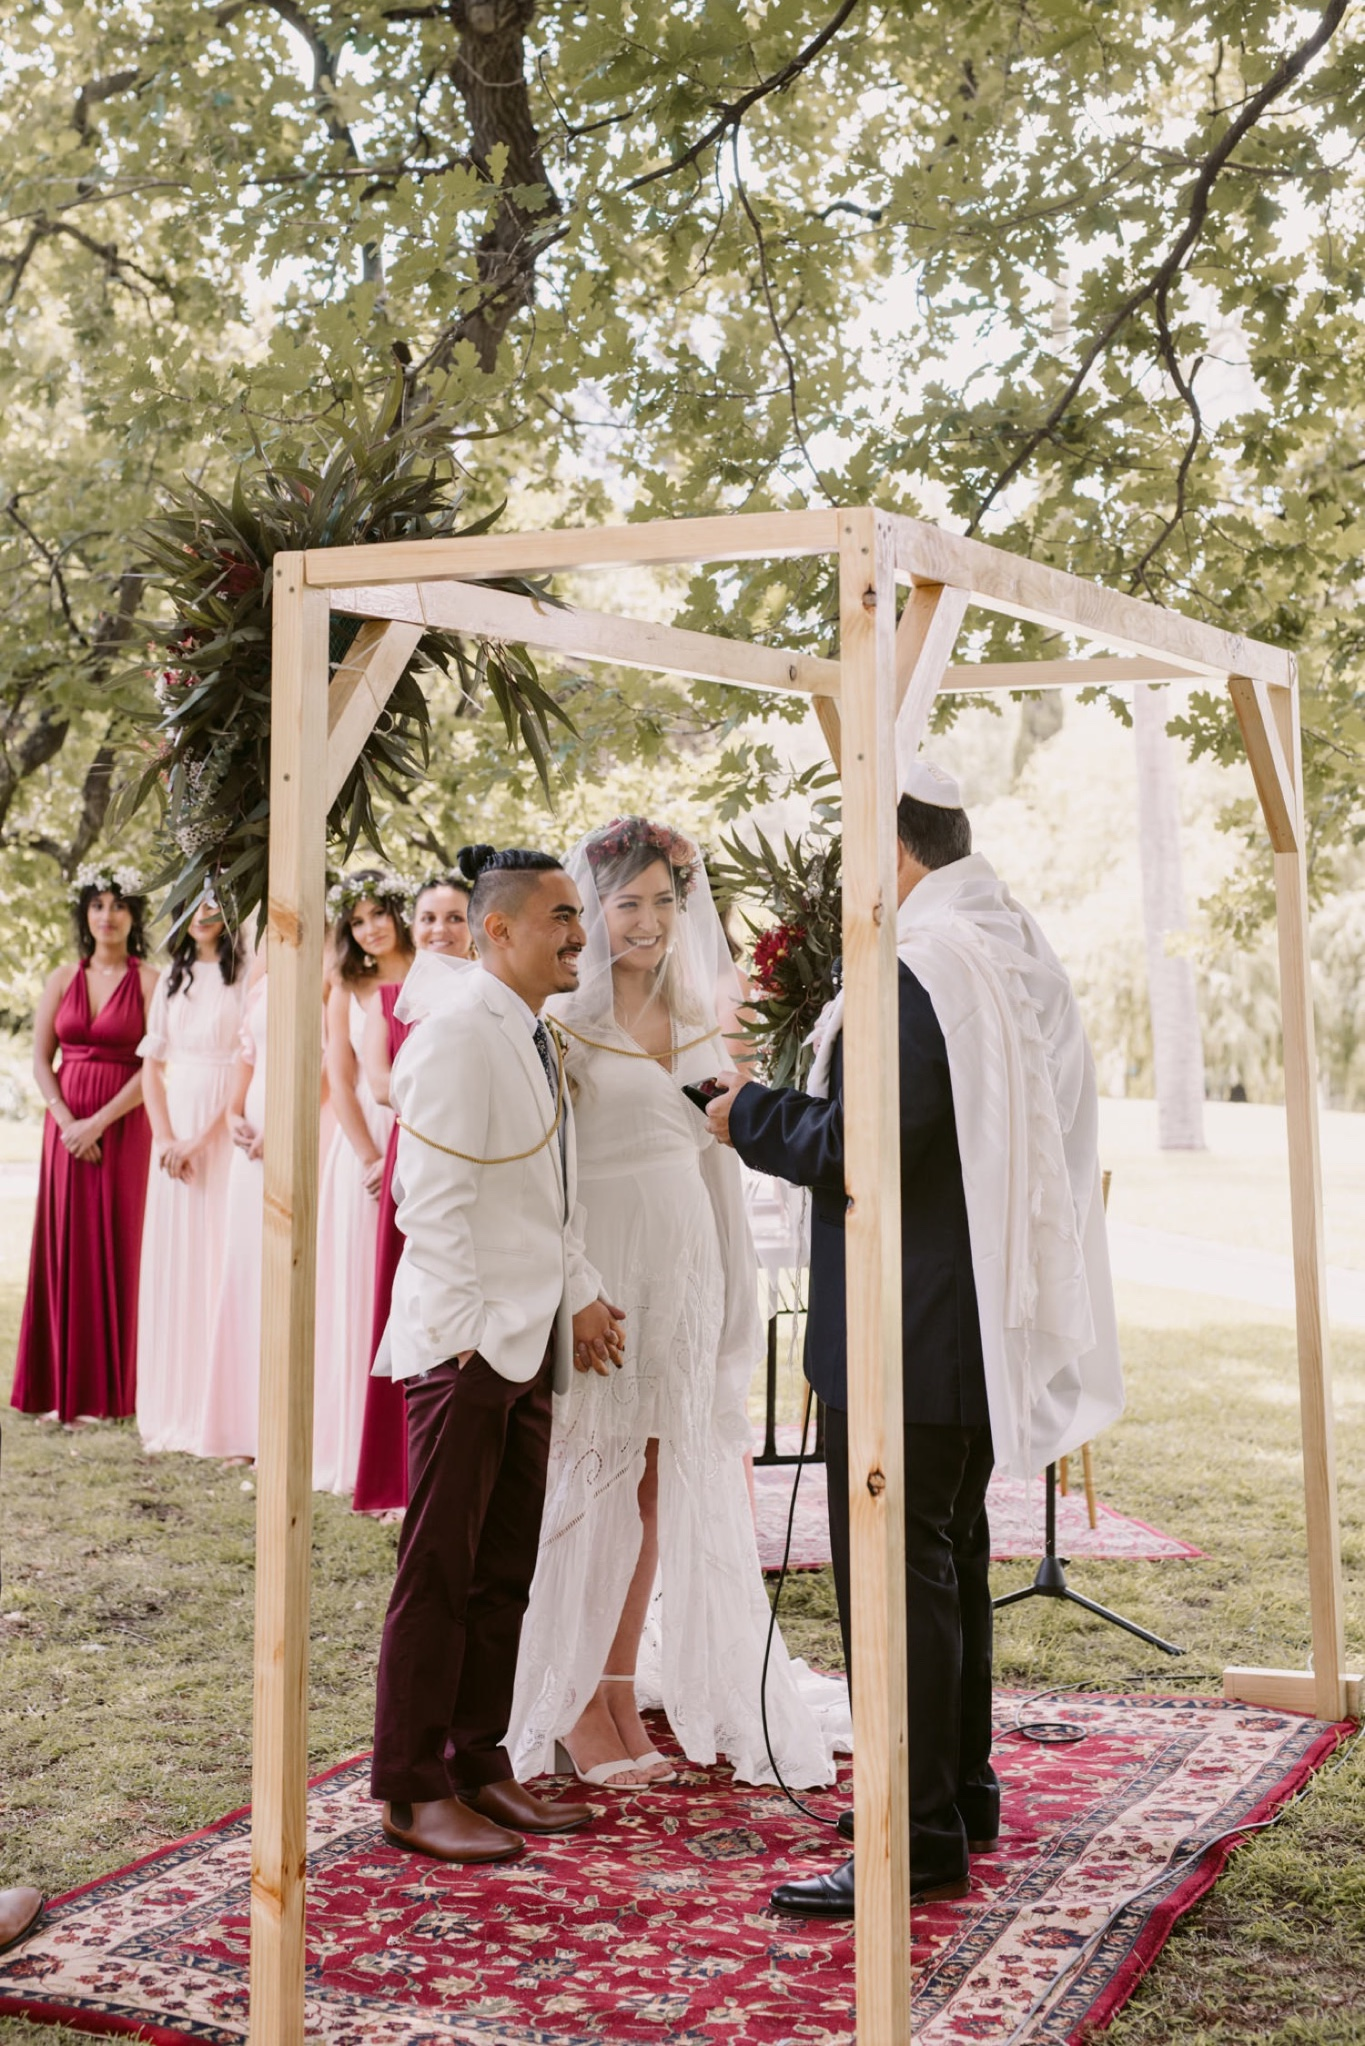 Gather and Tailor Melbourne Wedding Photography-103.jpg